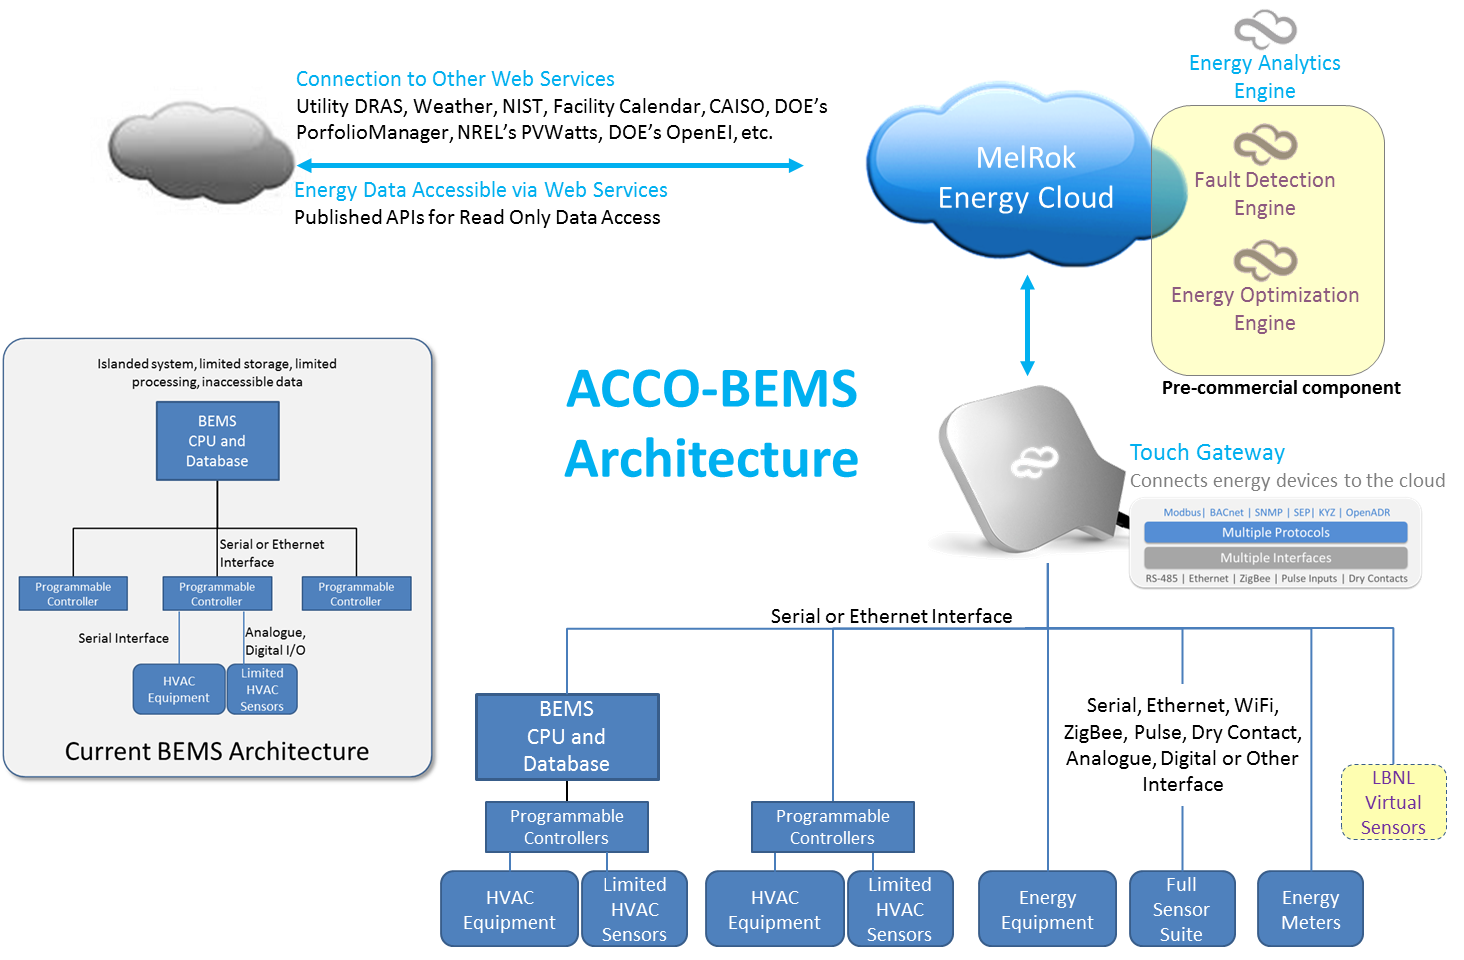 Schematics of current BMS architecture and the ACCO-BEMS architechture. Pre-commercial technology highlighted in yellow.